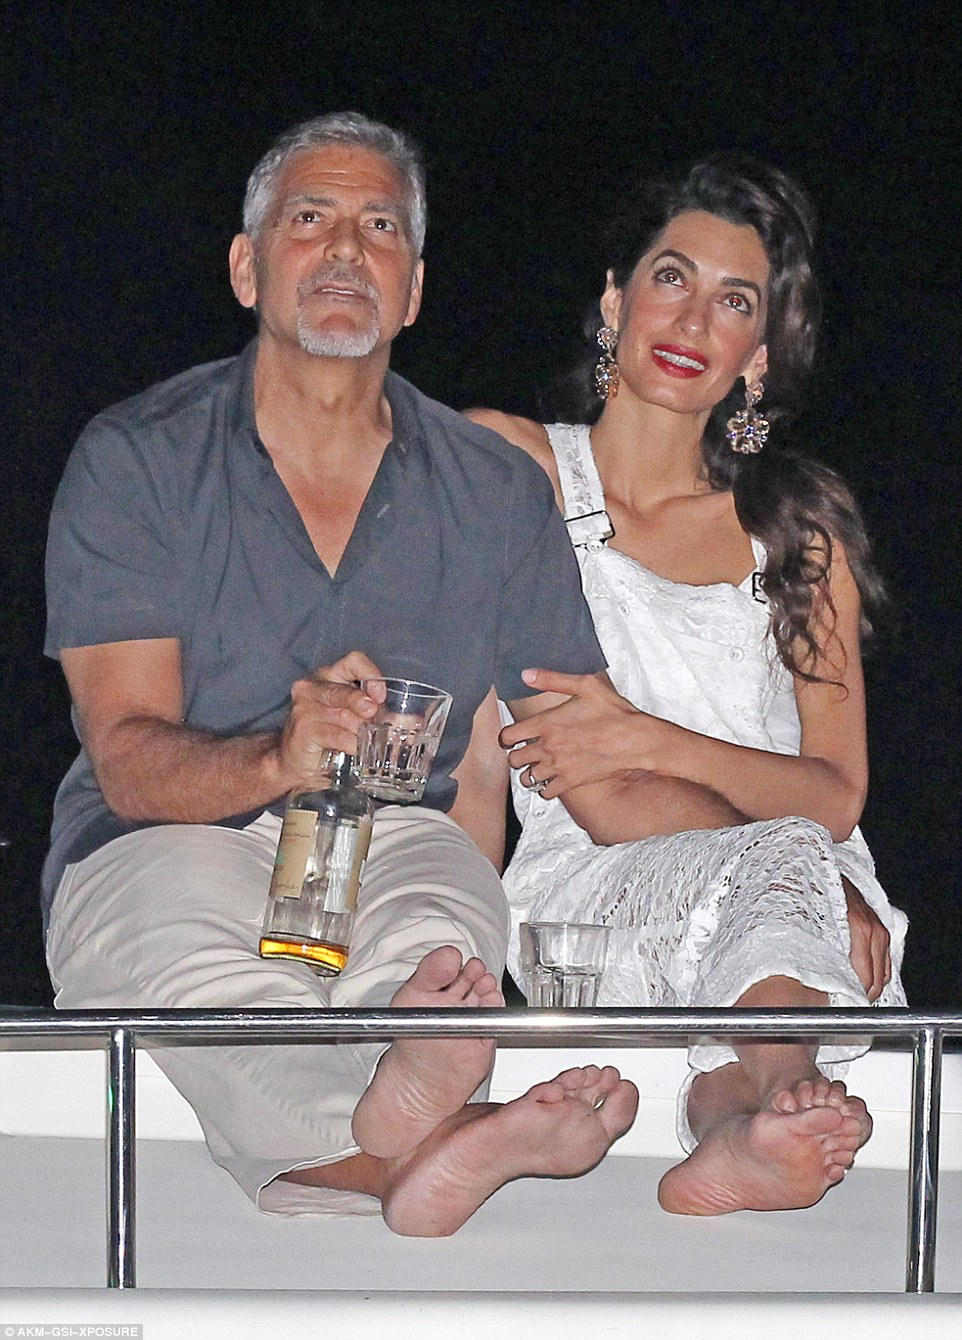 George Clooney, Amal & Bill Murray - Fourth of July Pictures 2016 3636082F00000578-0-image-m-82_1468373458968